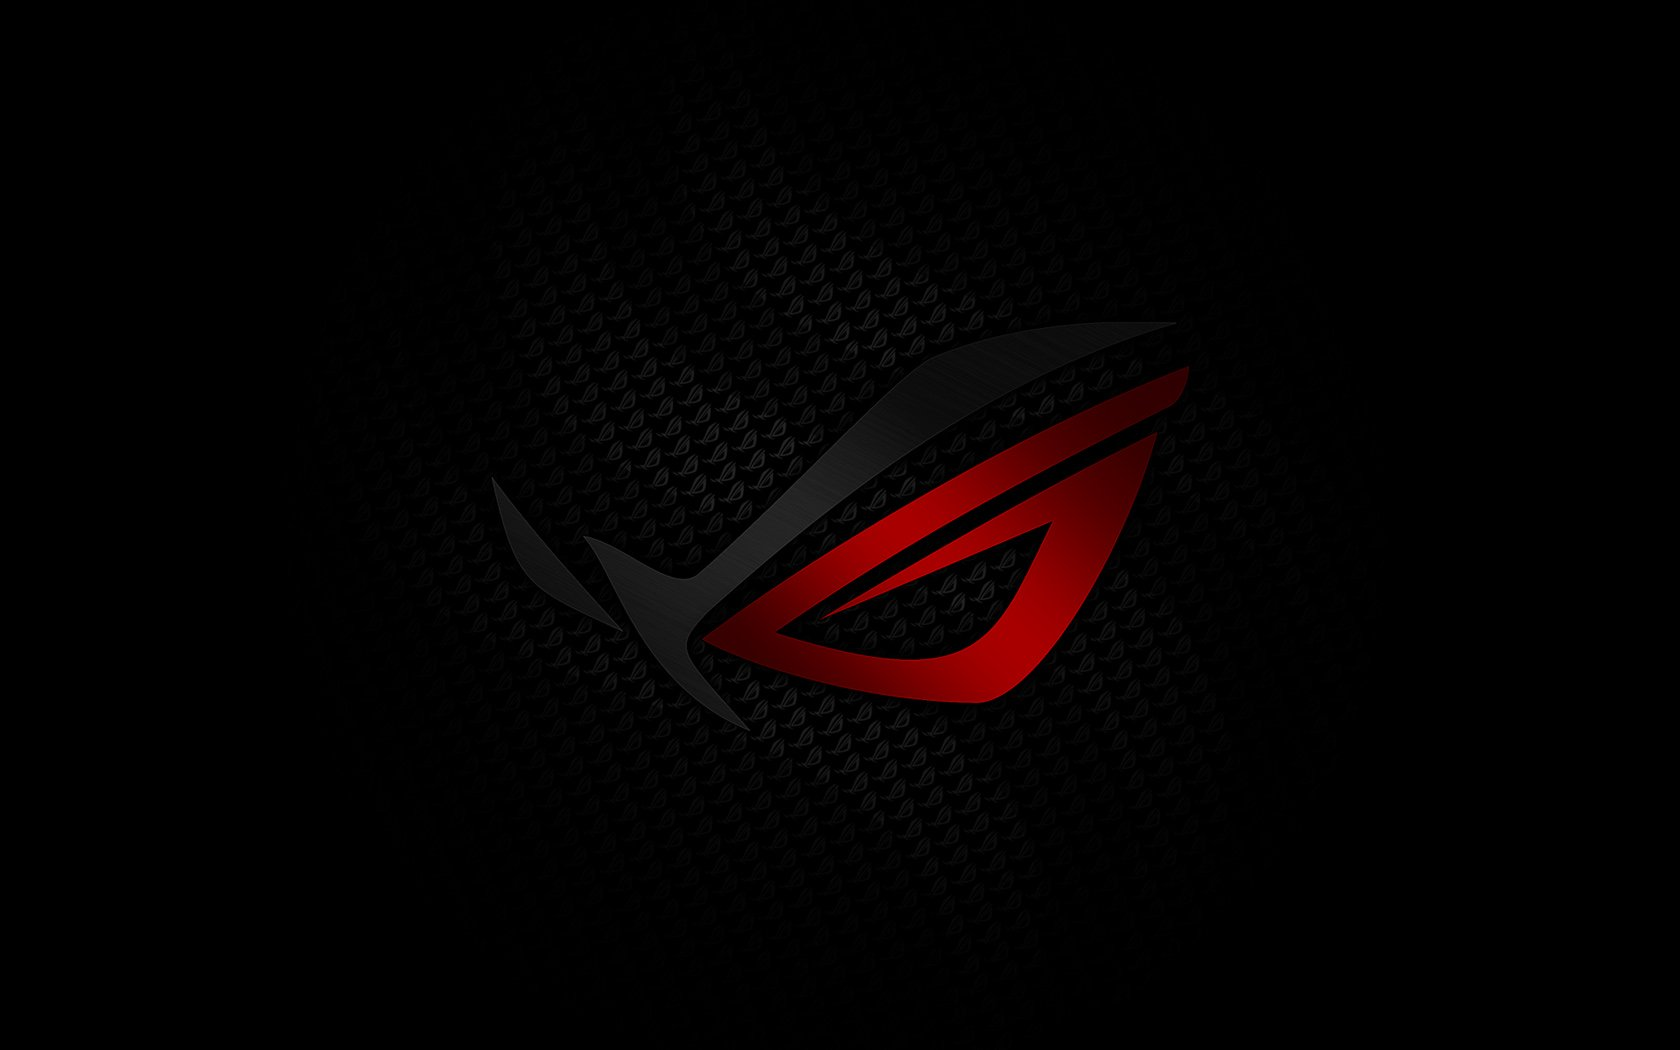 ASUS Republic of Gamers Wallpaper Pack v2 by BlaCkOuT1911 on 1680x1050